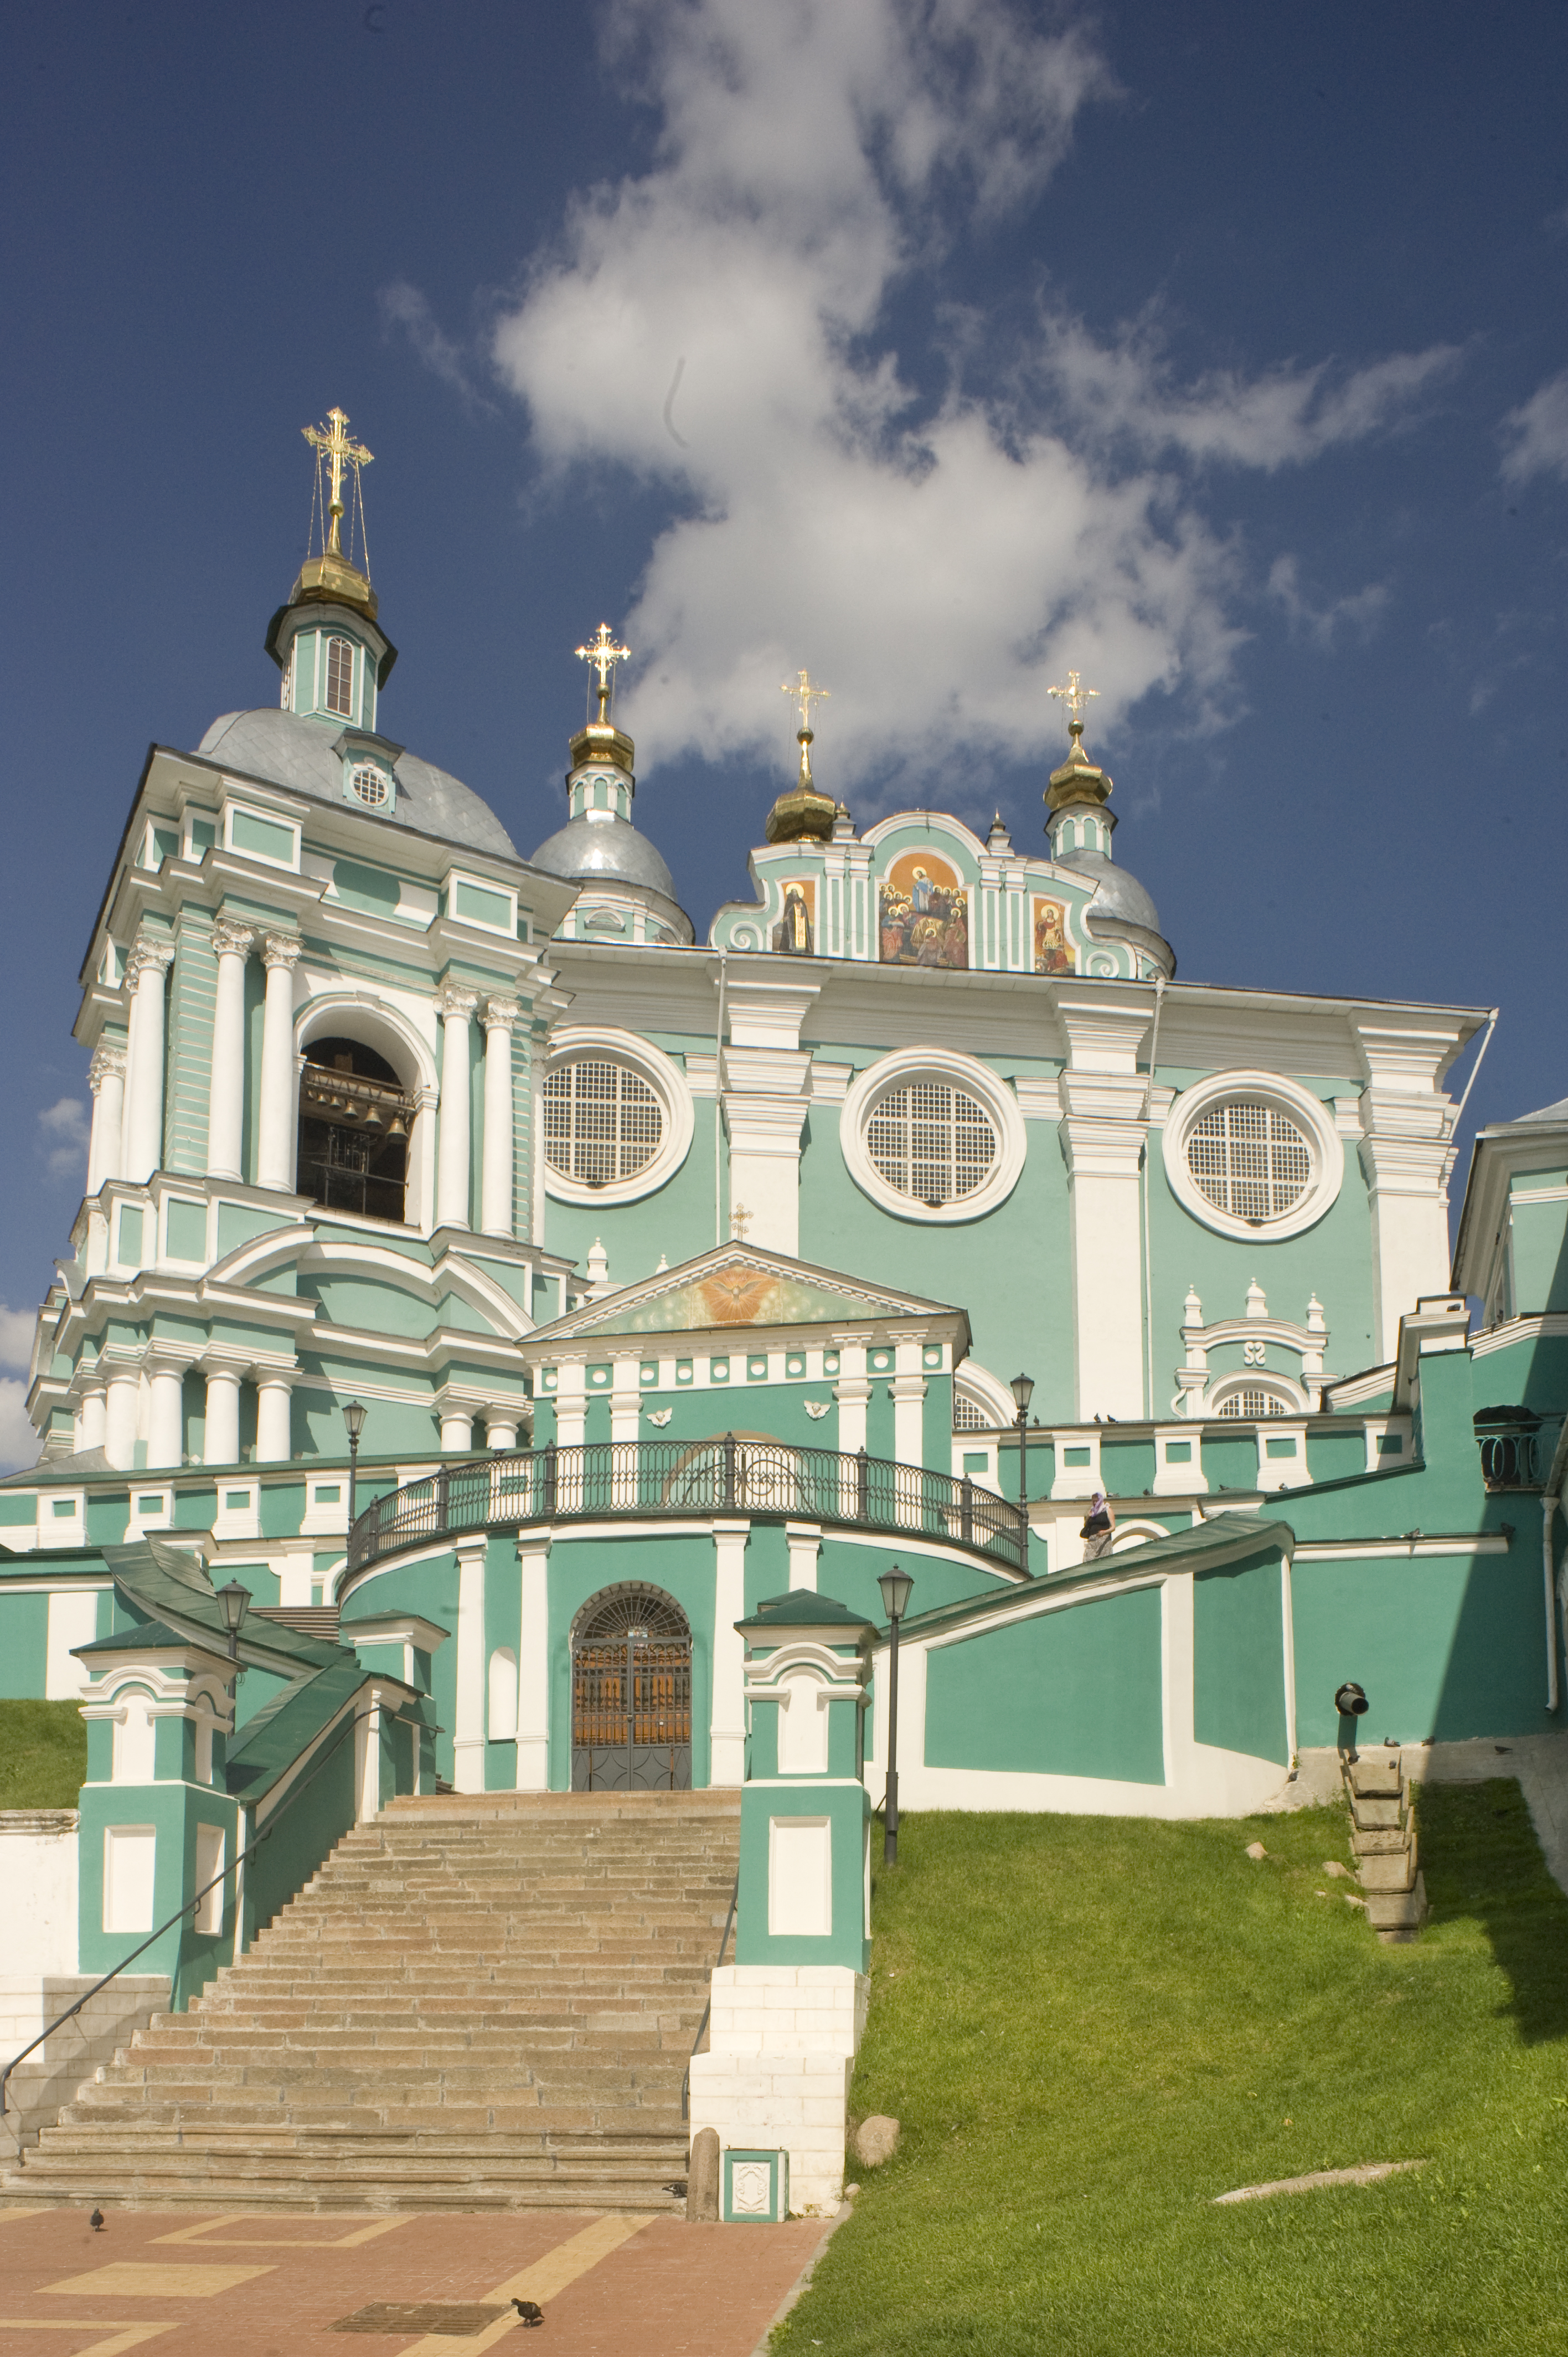 Dormition Cathedral, west view with bell tower. July 1, 2014. / Photo: William Brumfield